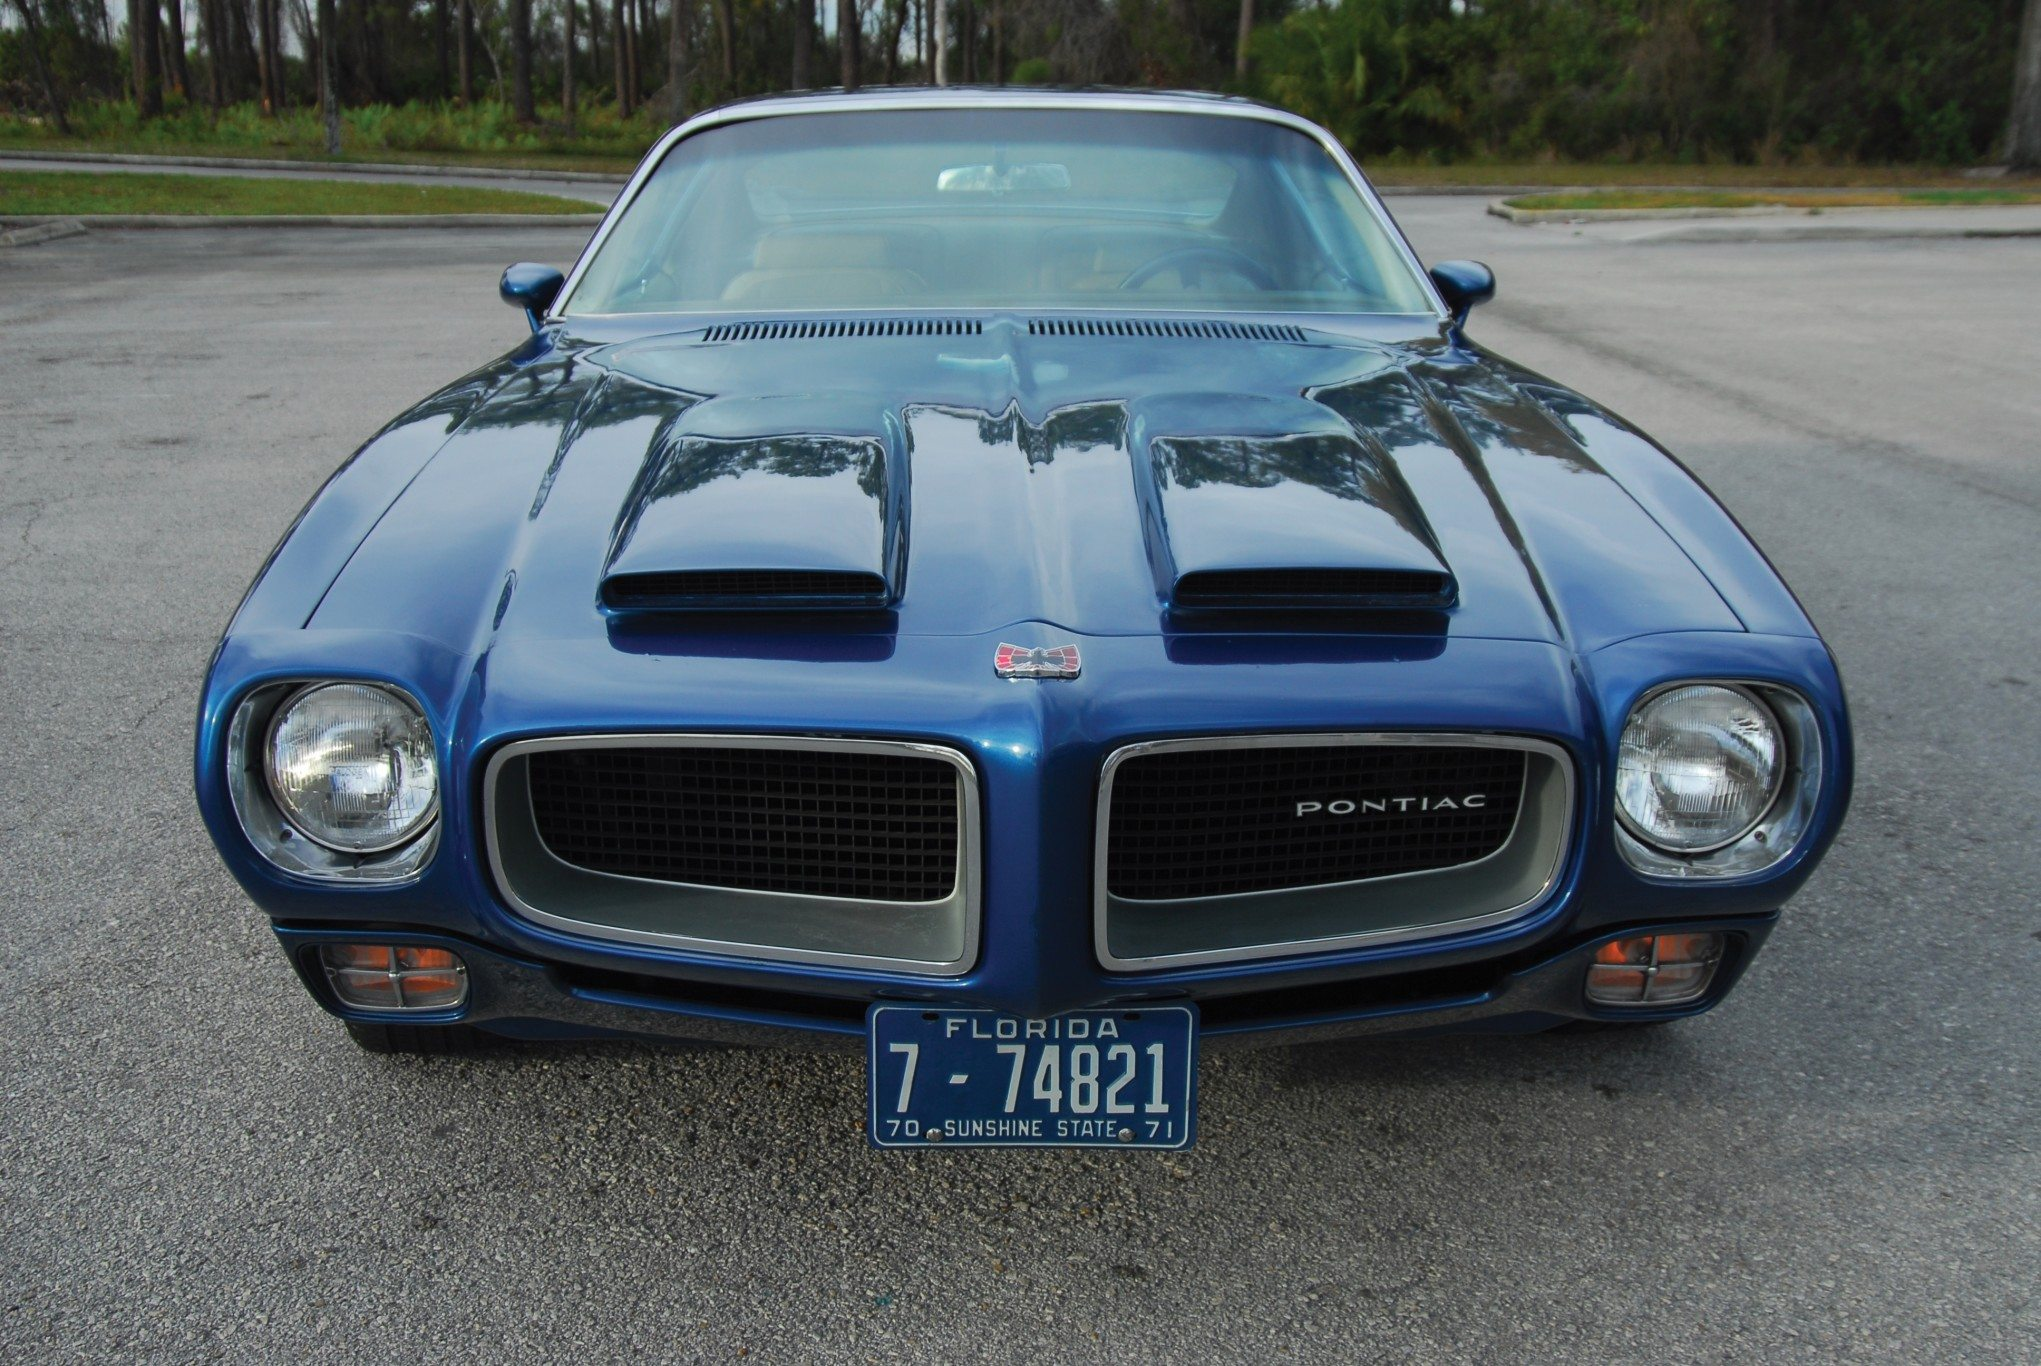 1970 Pontiac Firebird Formula 400 Front and Hood